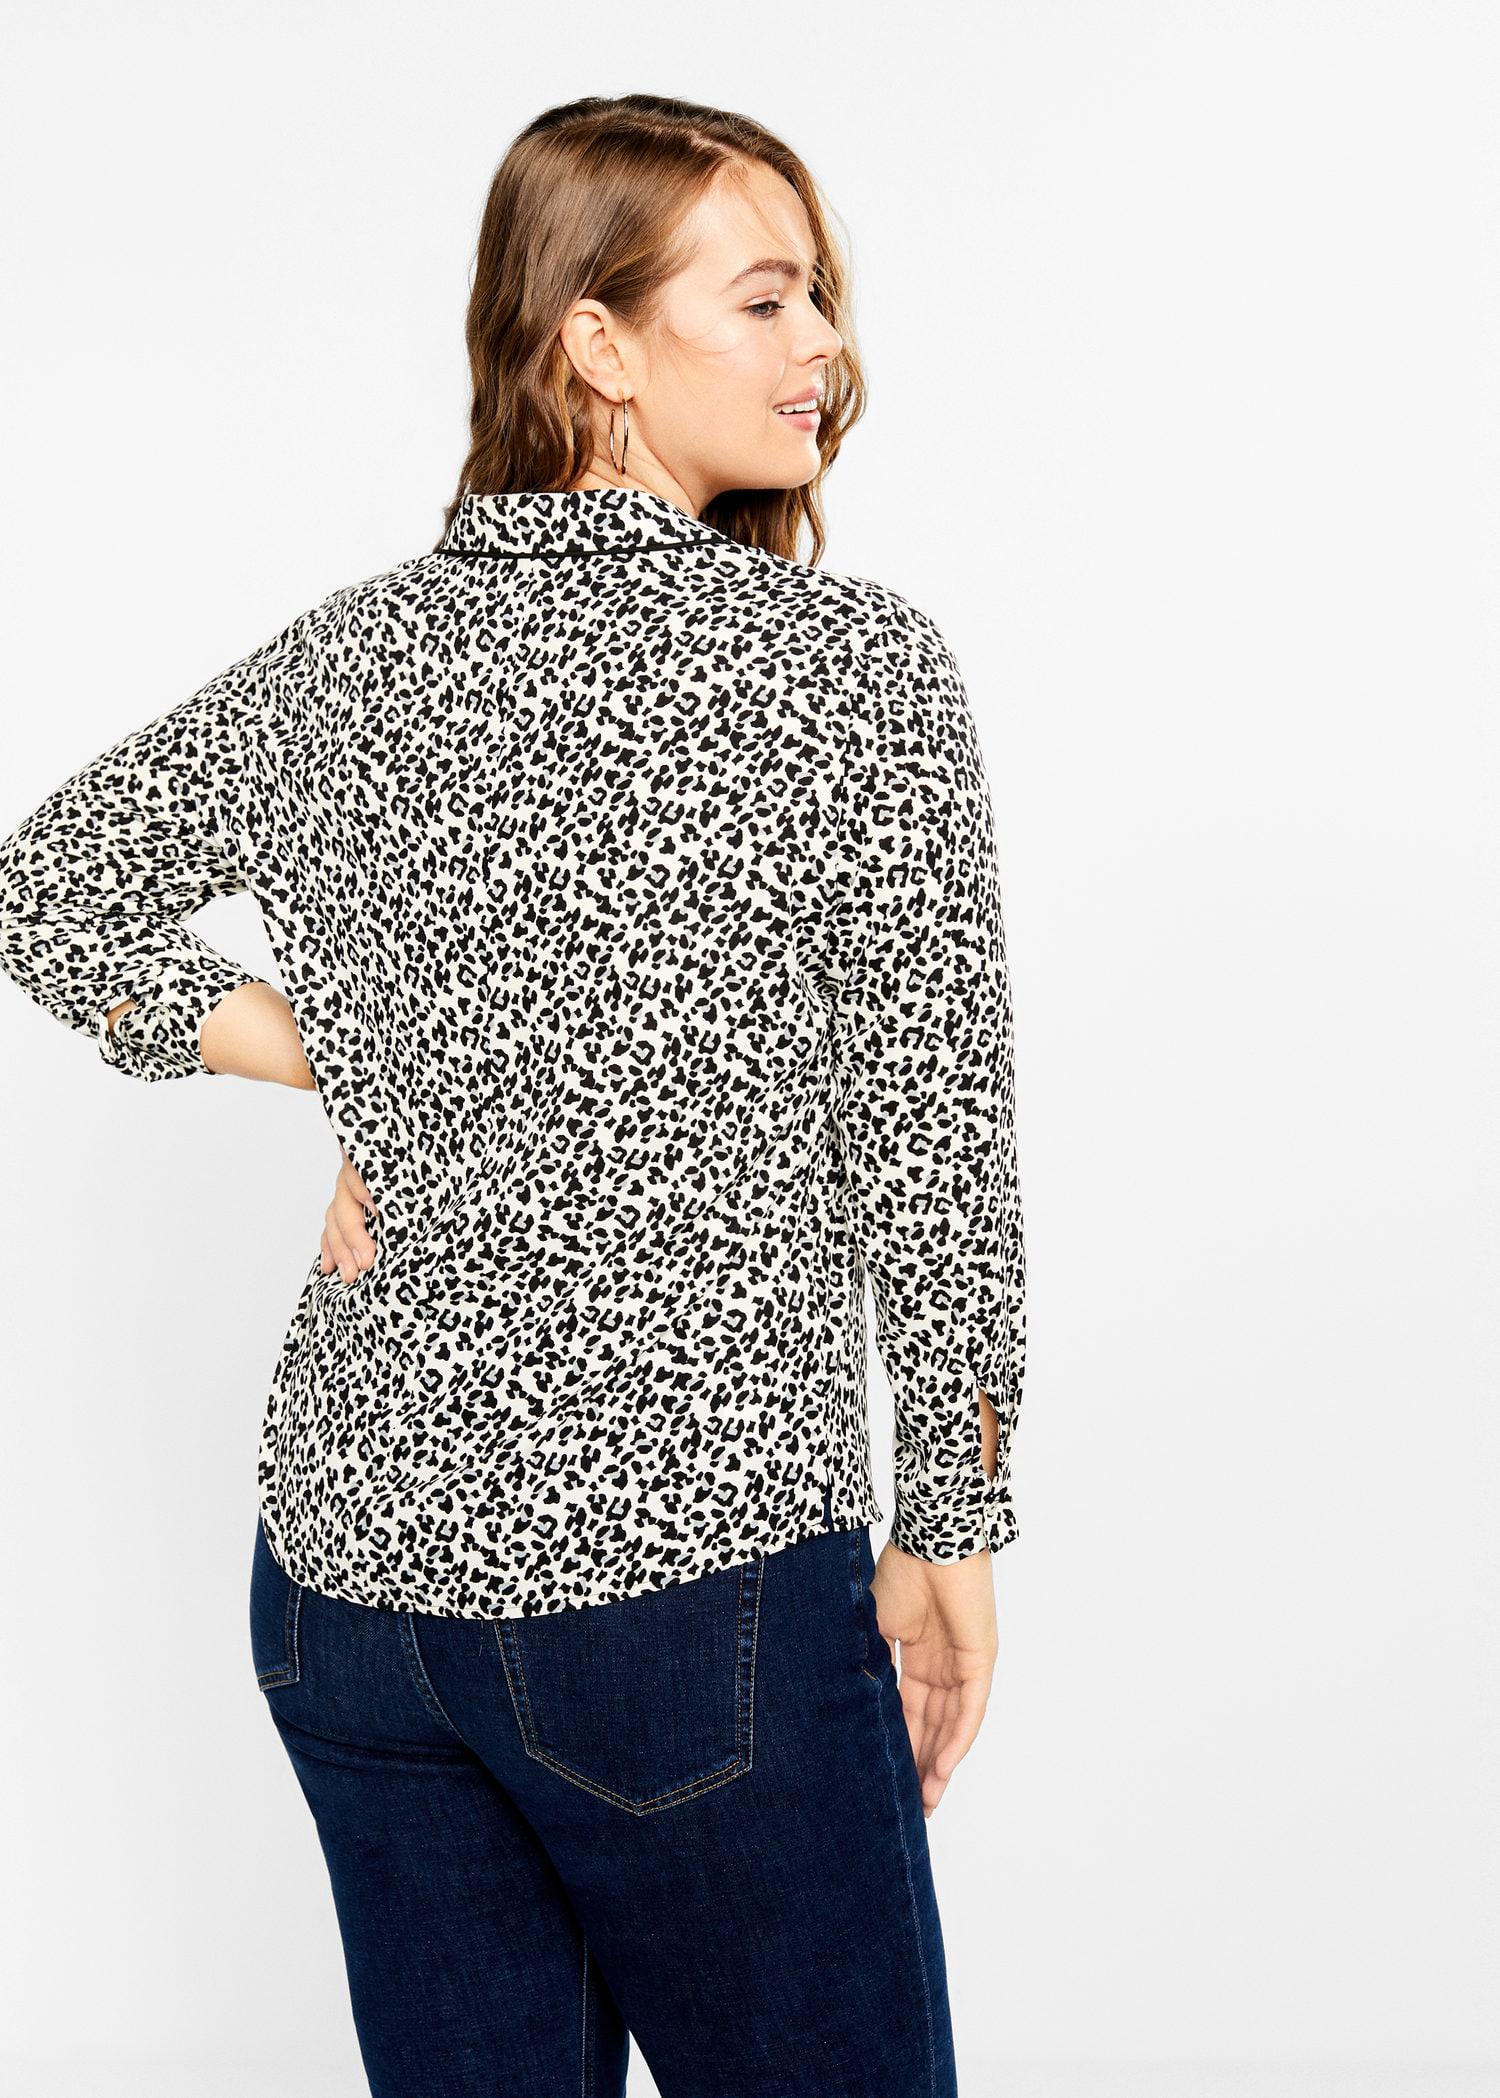 2702f7a8d4c Lyst - Violeta By Mango Animal Print Blouse